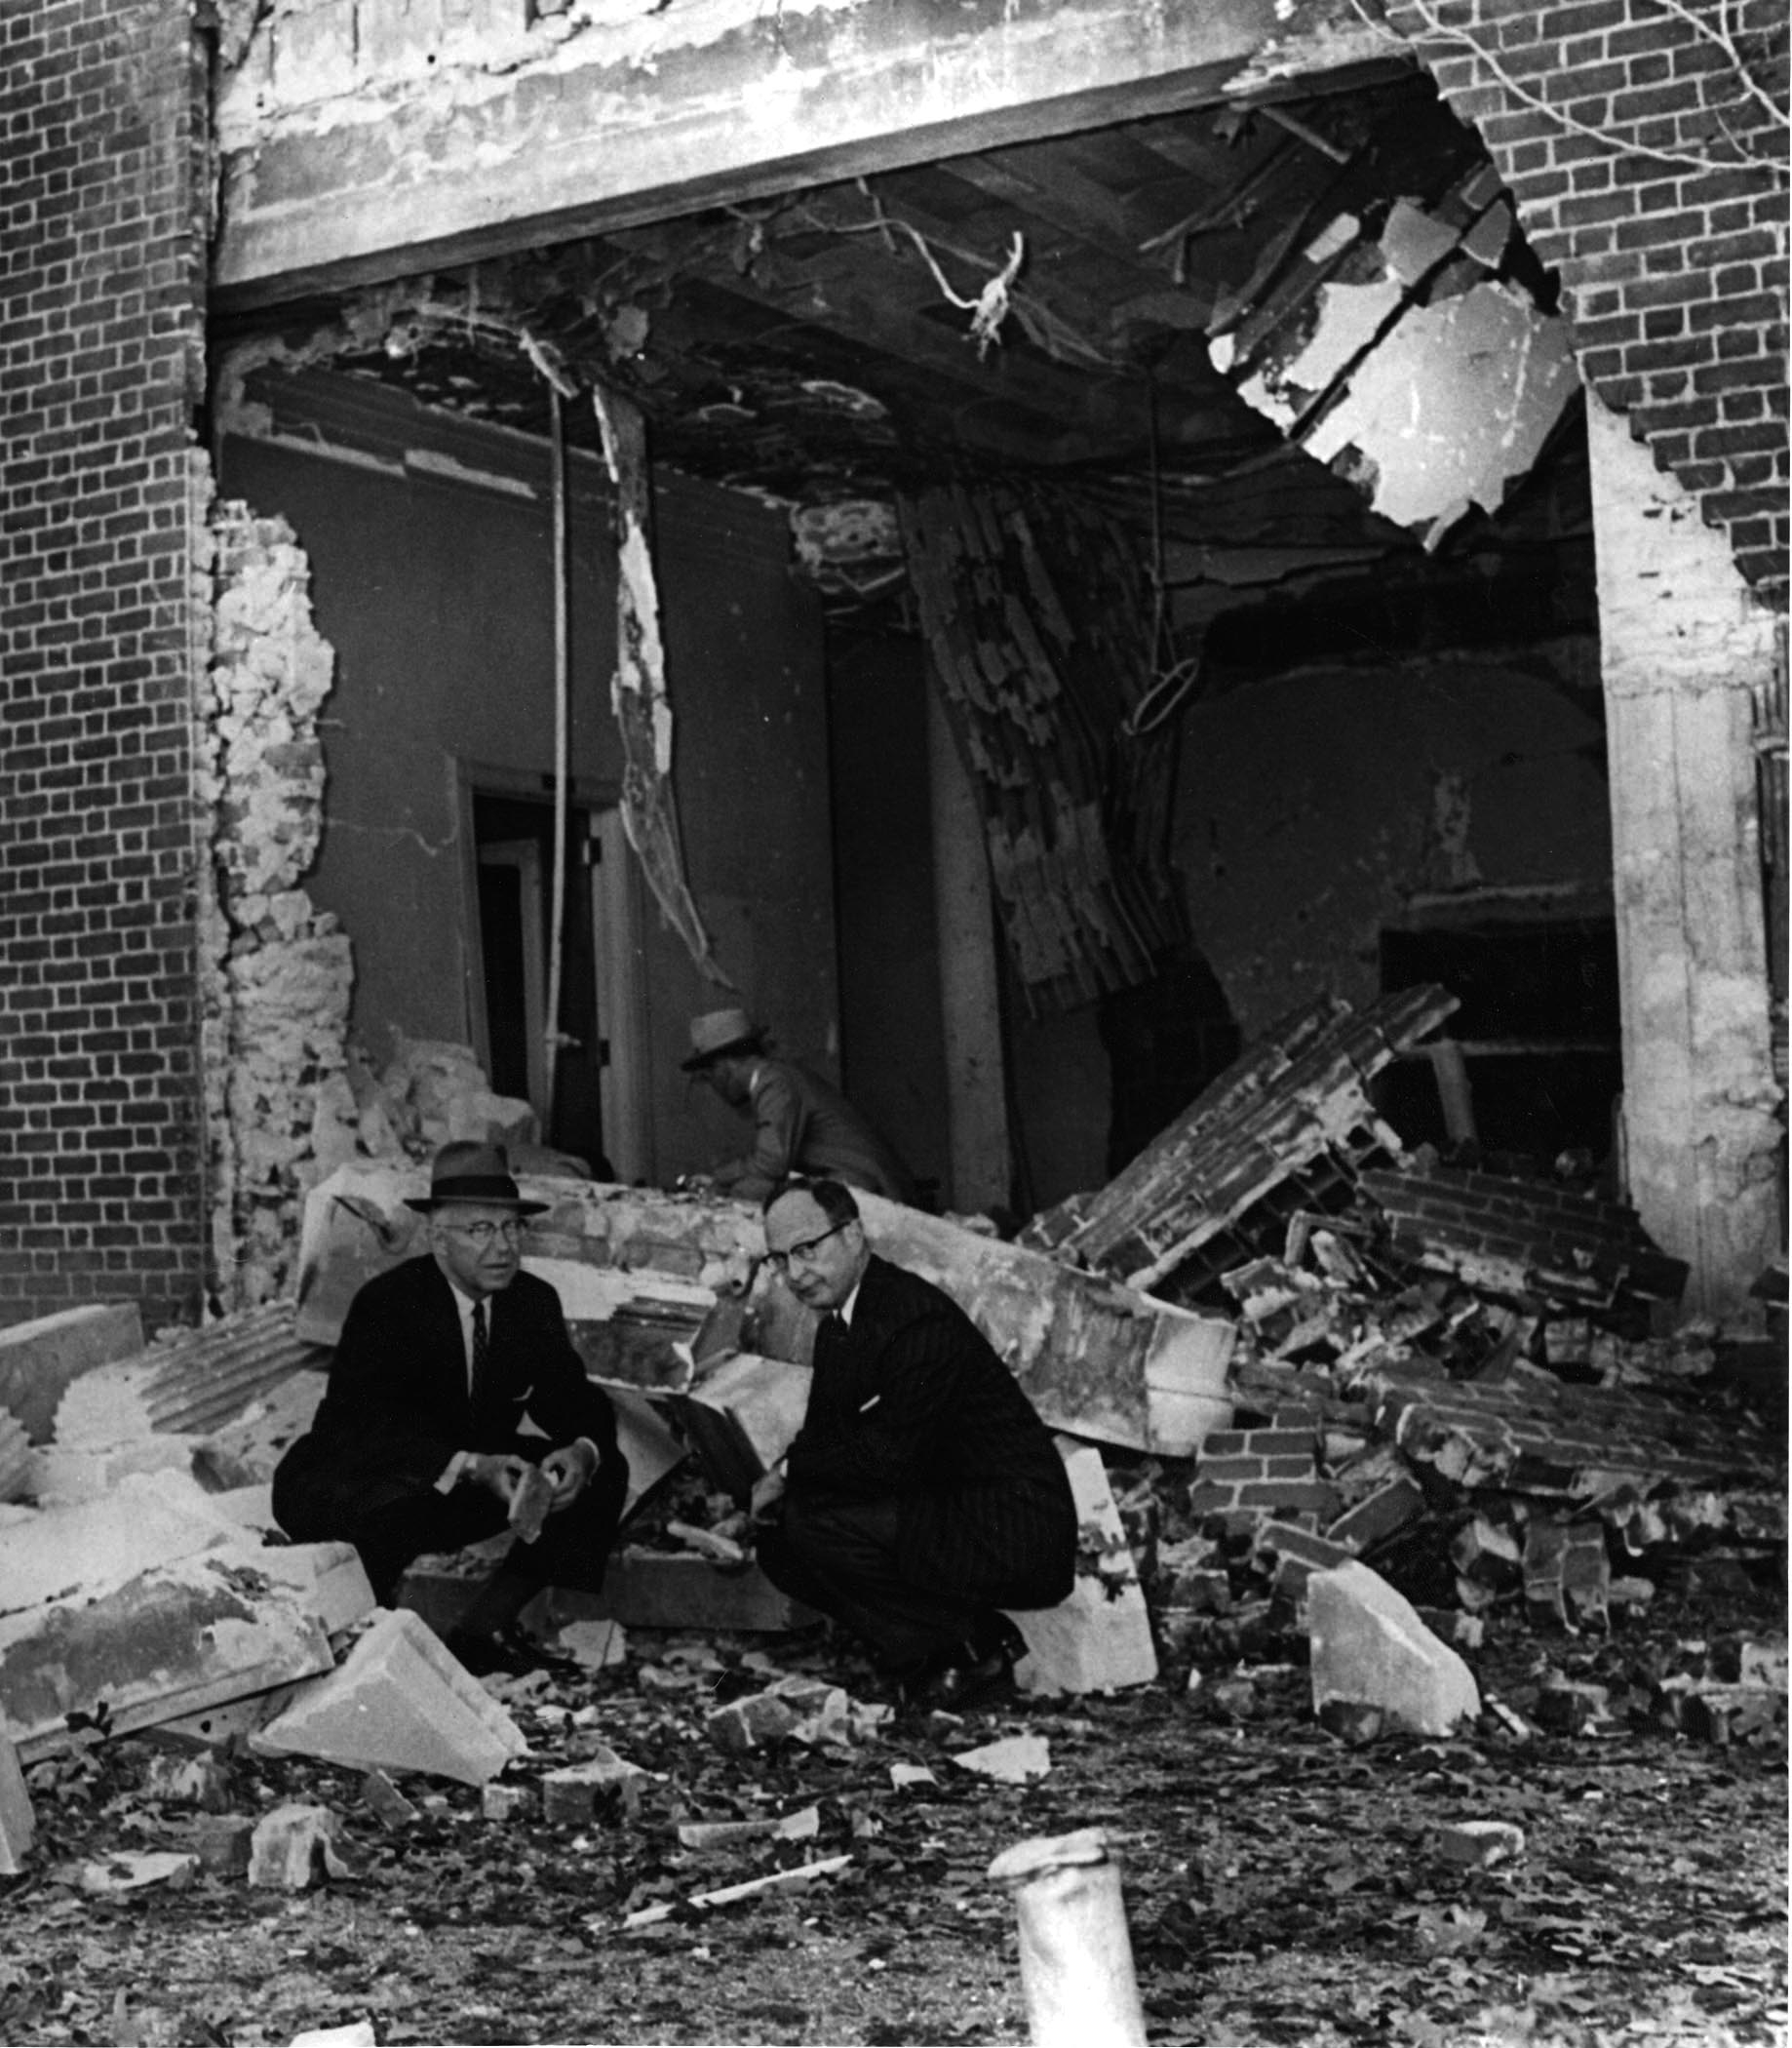 Mayor William Hartsfield with Rabbi Jacob Rothschild after bombing. Photo courtesy of The Temple (Hebrew Benevolent Congregation in Atlanta).